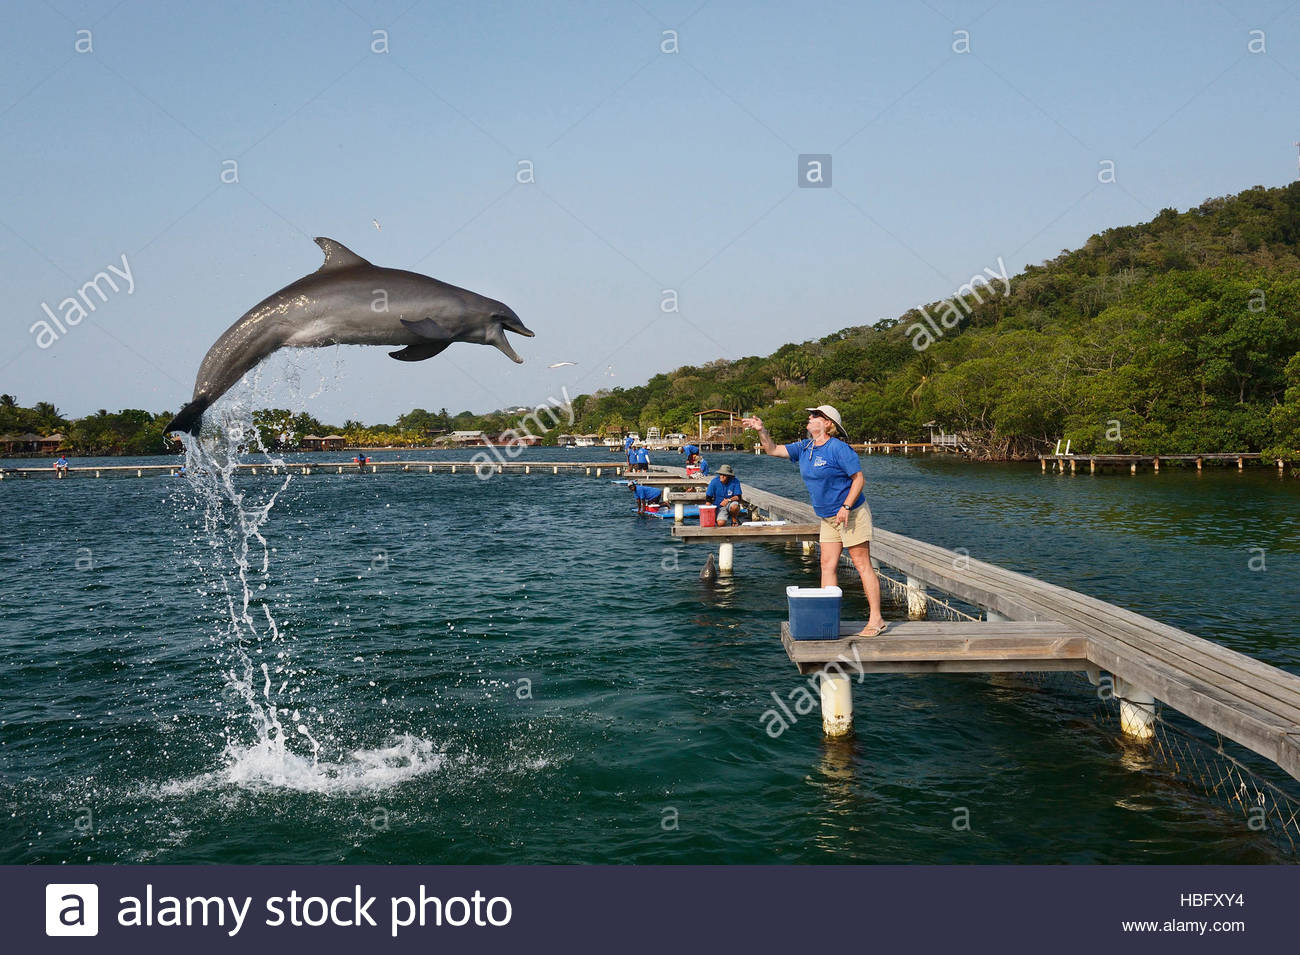 A biologist throws fish to a bottlenose dolphin at the Roatan Institute for Marine Science at Anthony's Key - Stock Image